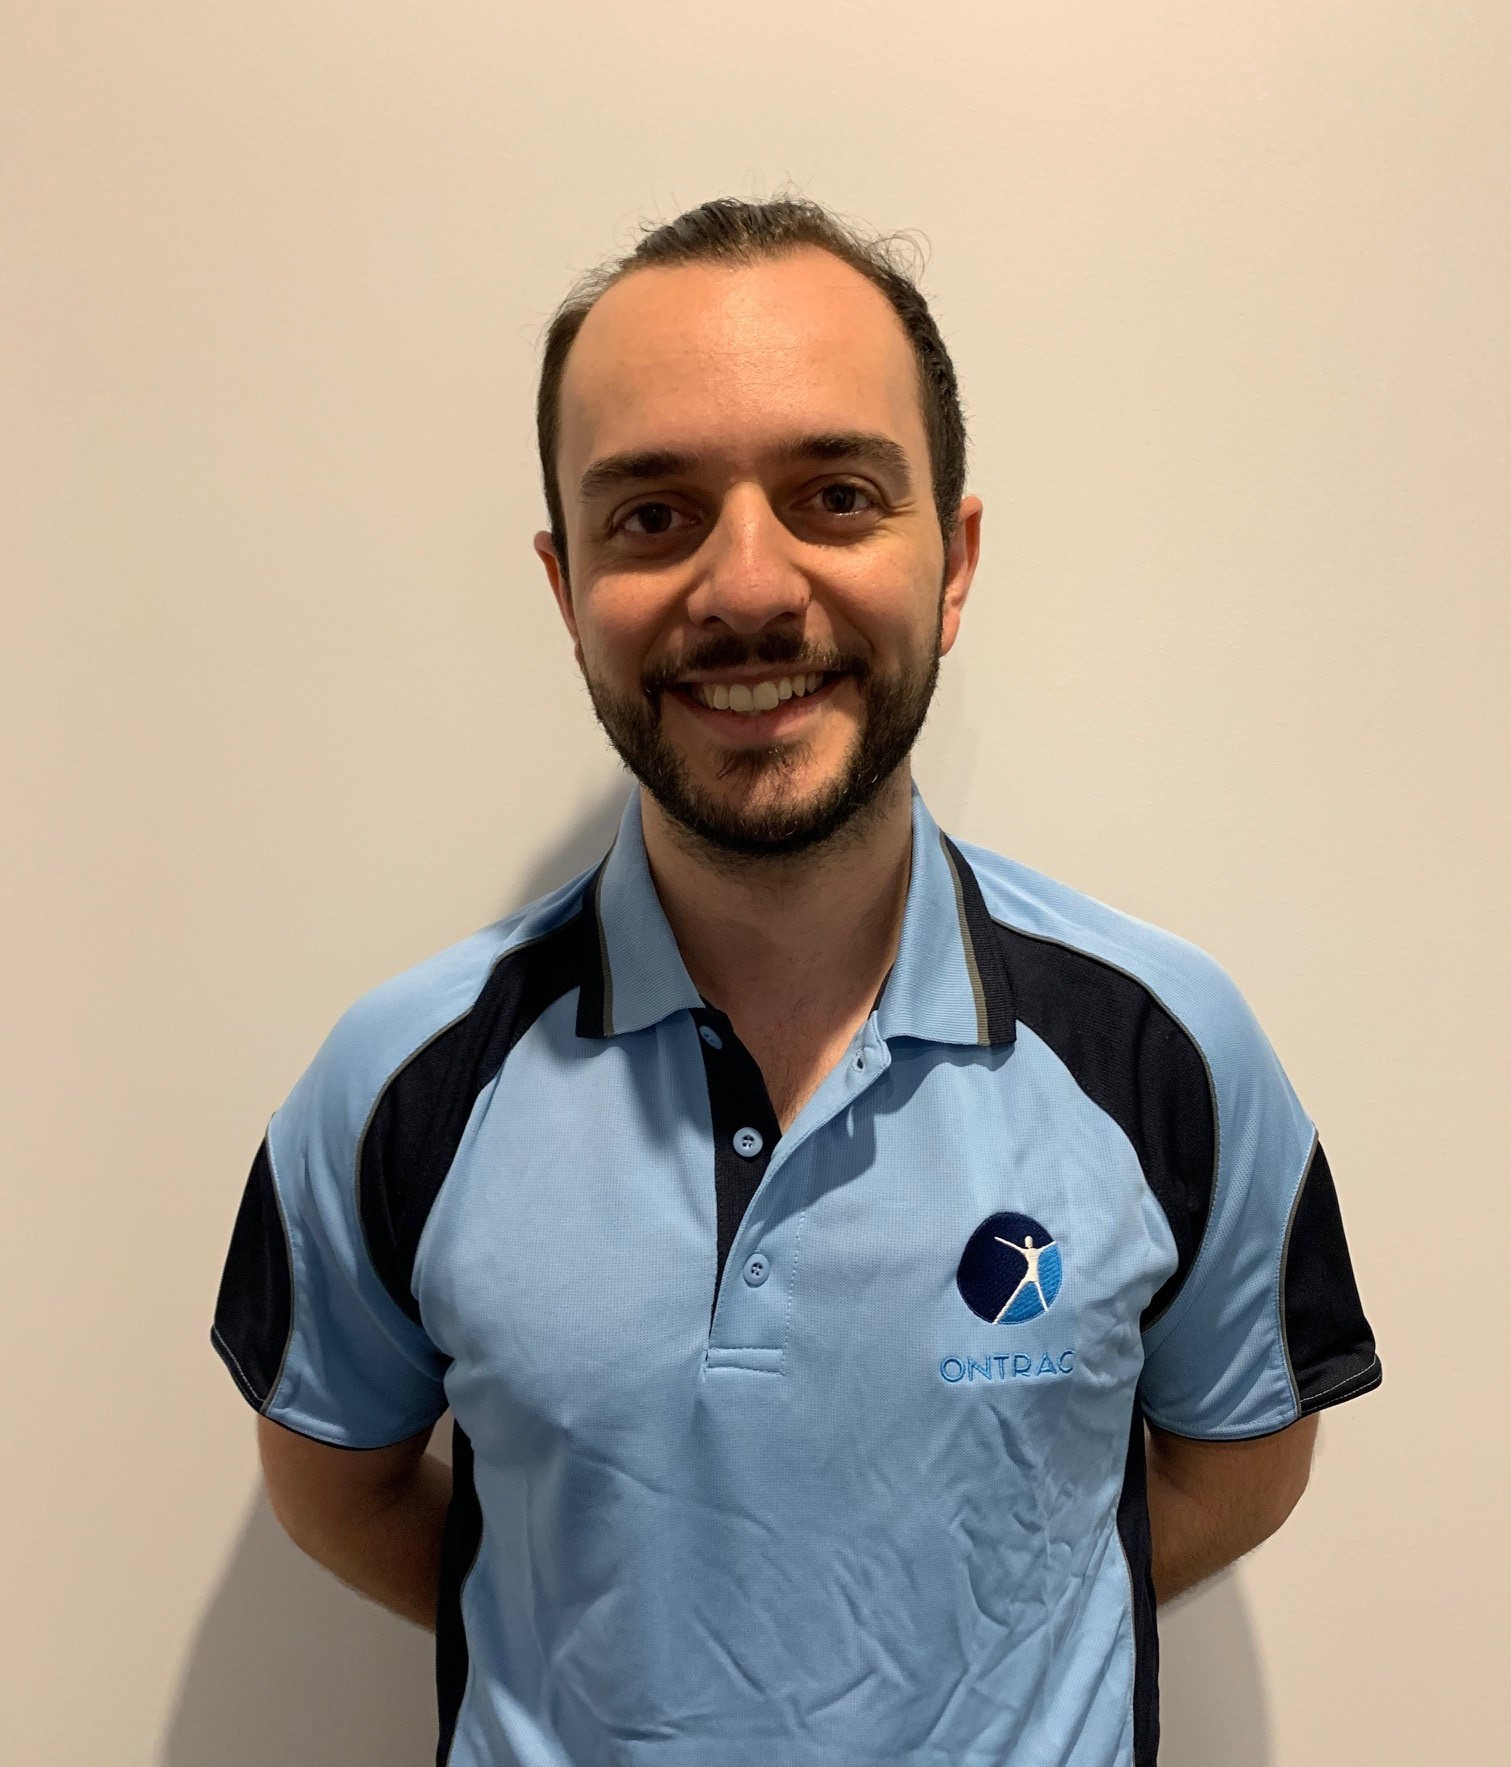 Seb Rendeci - Physiotherapist - Campbelltown Clinic